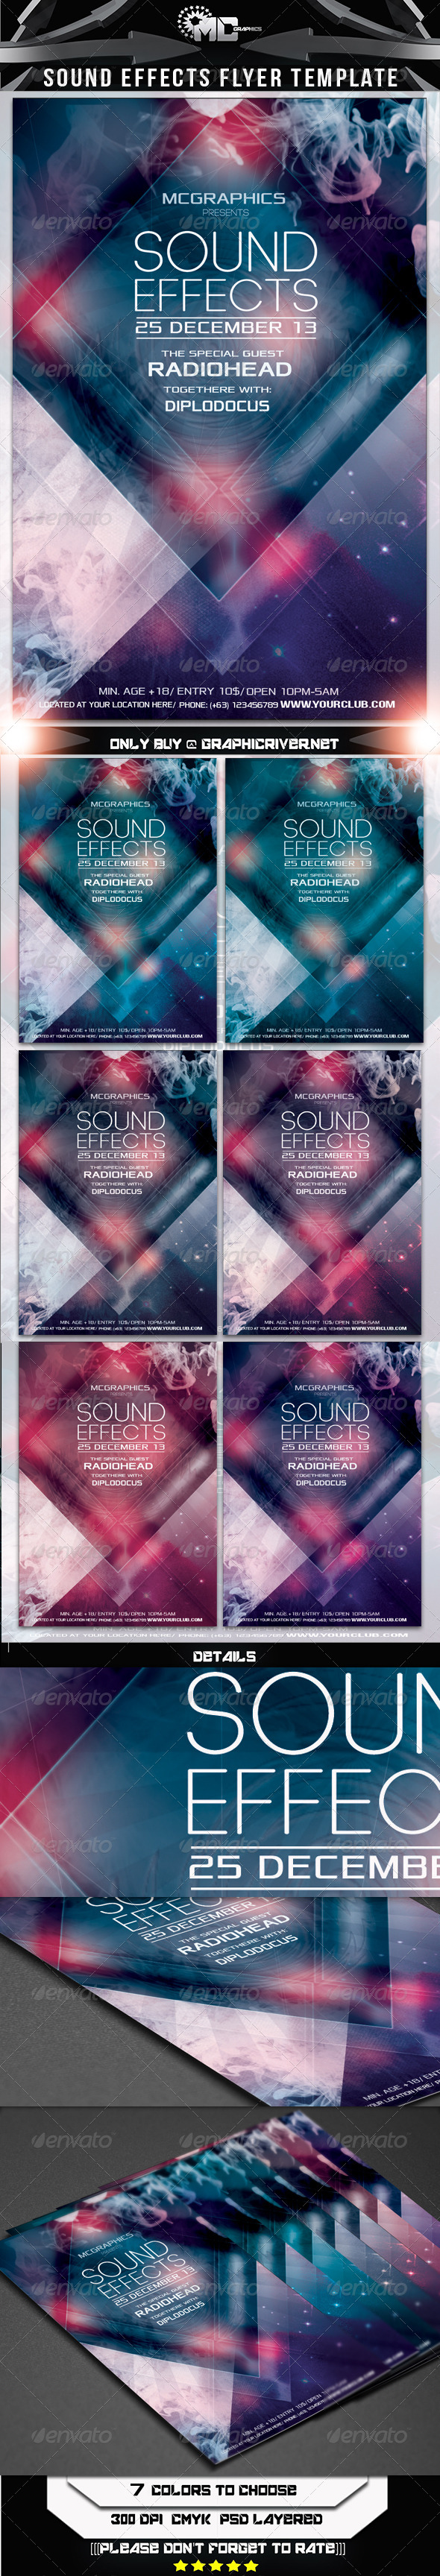 Sound Effects Flyer Template - Flyers Print Templates